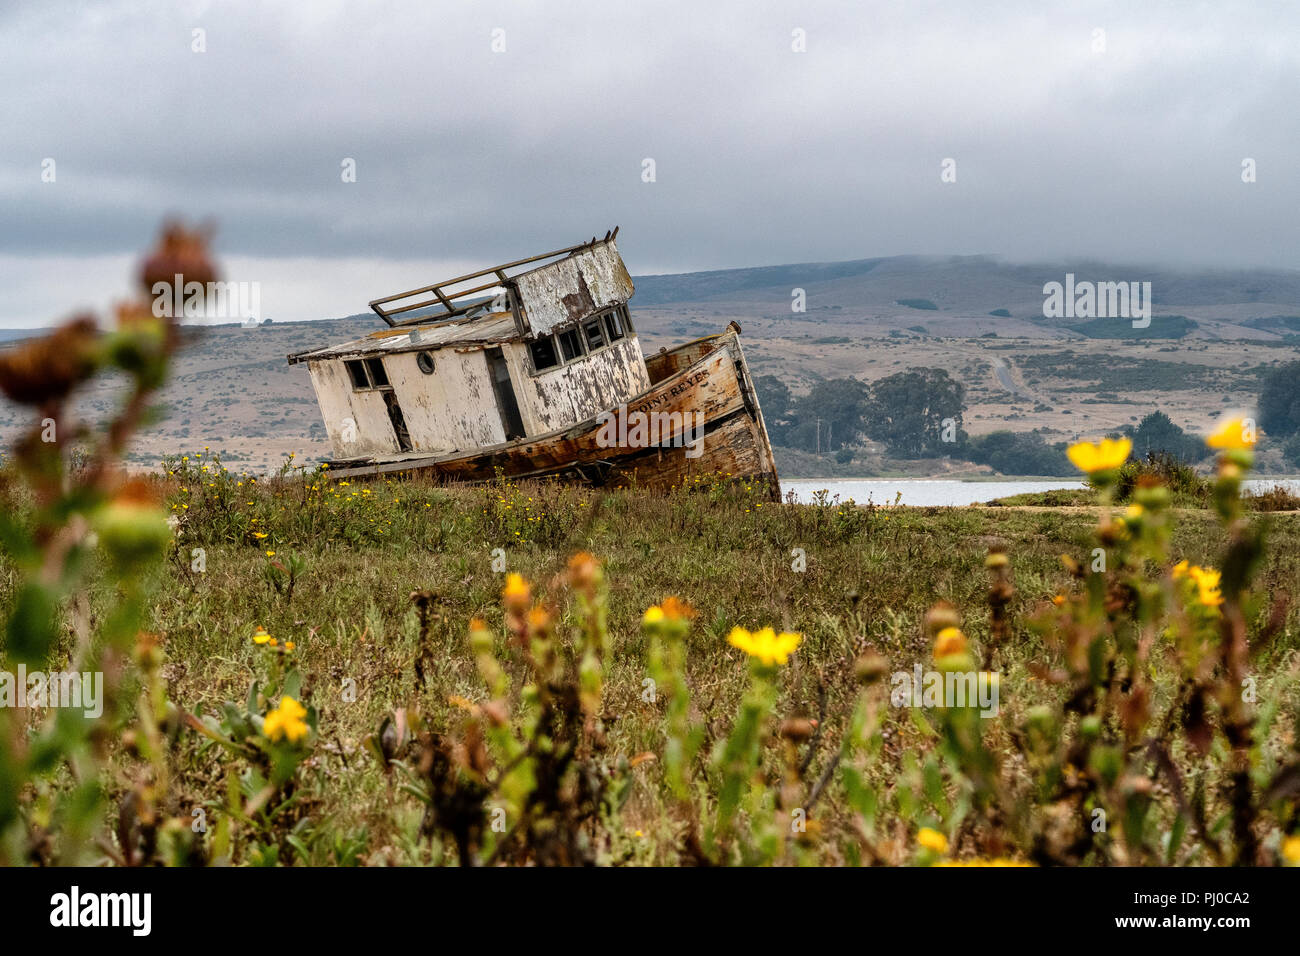 The Point Reyes abandoned shipwreck along the shore of Tomales Bay at Inverness, Point Reyes National Seashore, California. - Stock Image